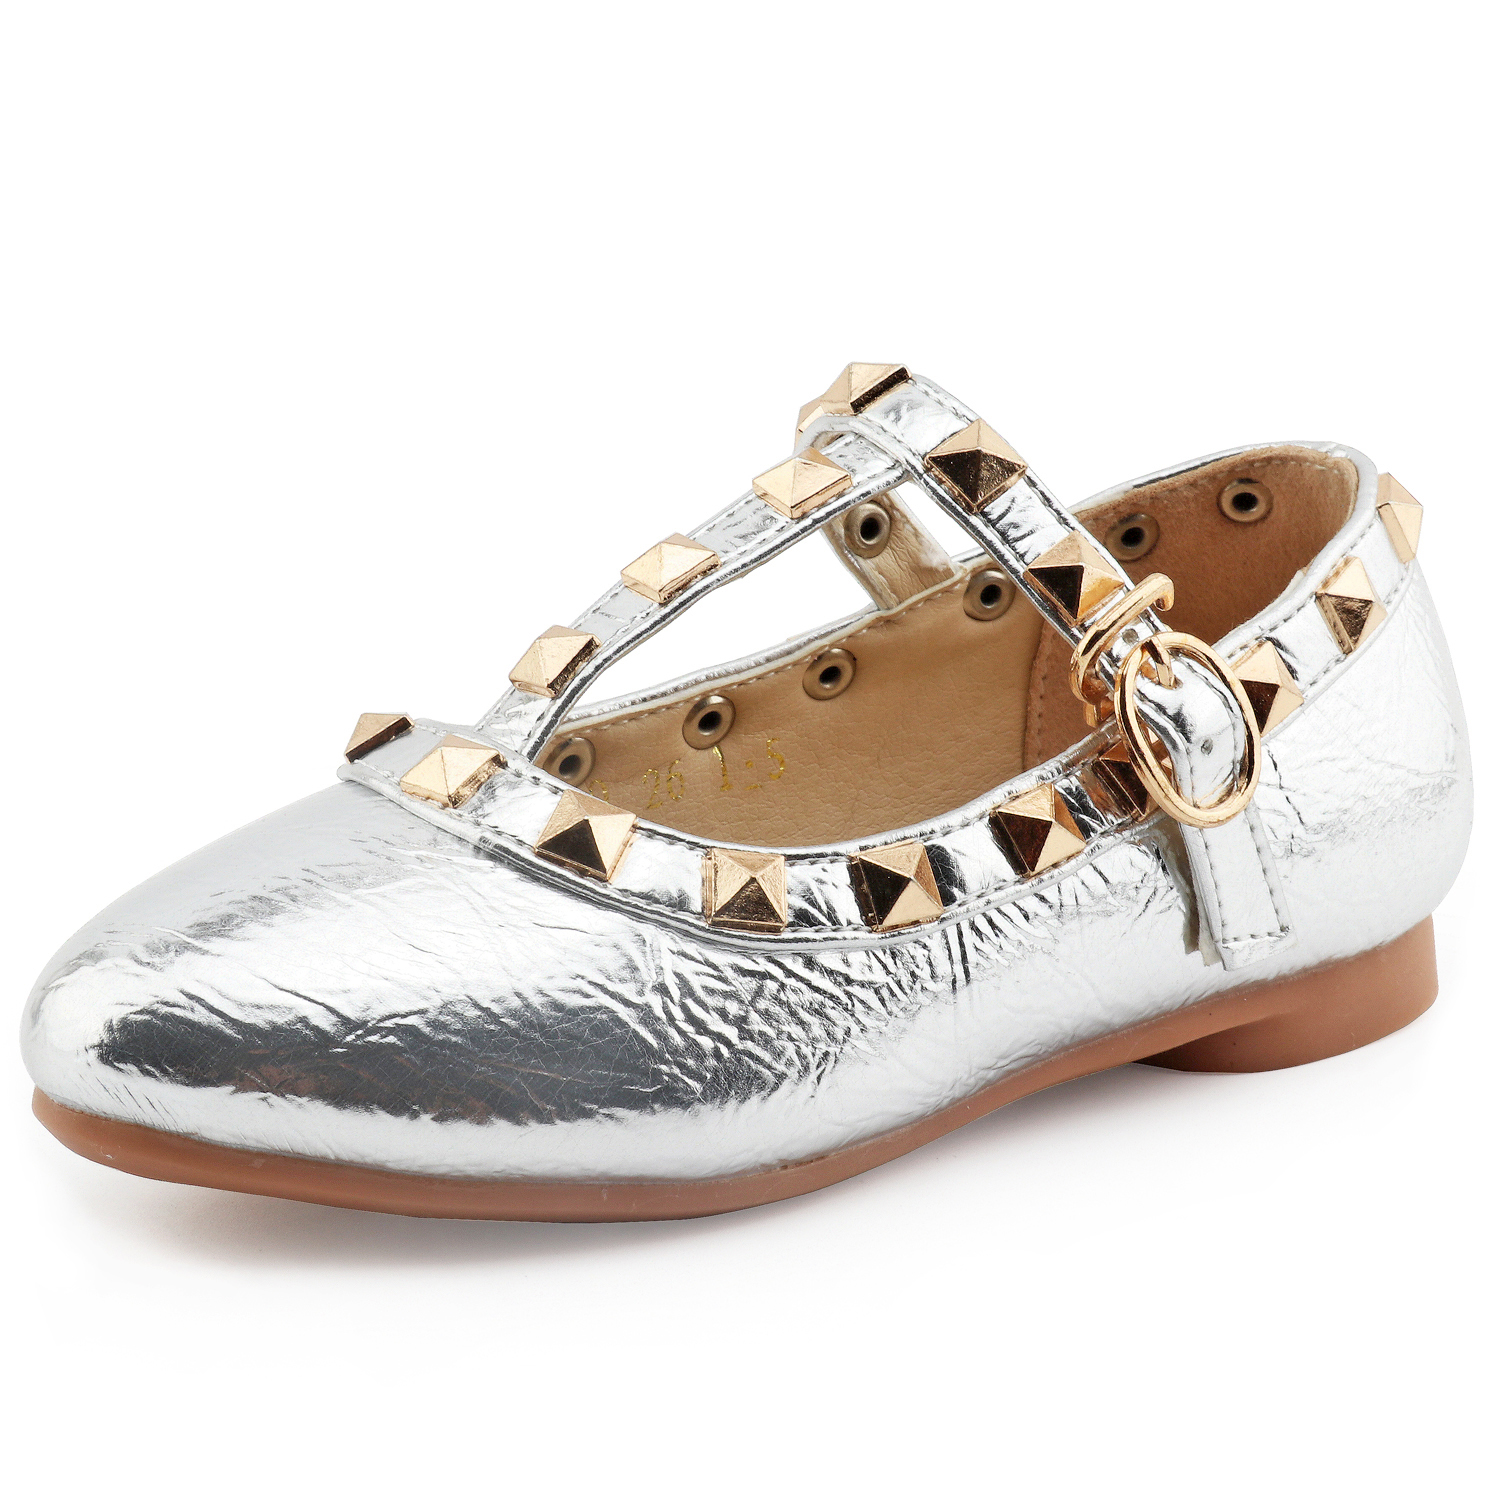 CCTWINS KIDS spring girls brand for baby stud shoes children nude sandal toddler summer shoe black white flats party shoe G358 5